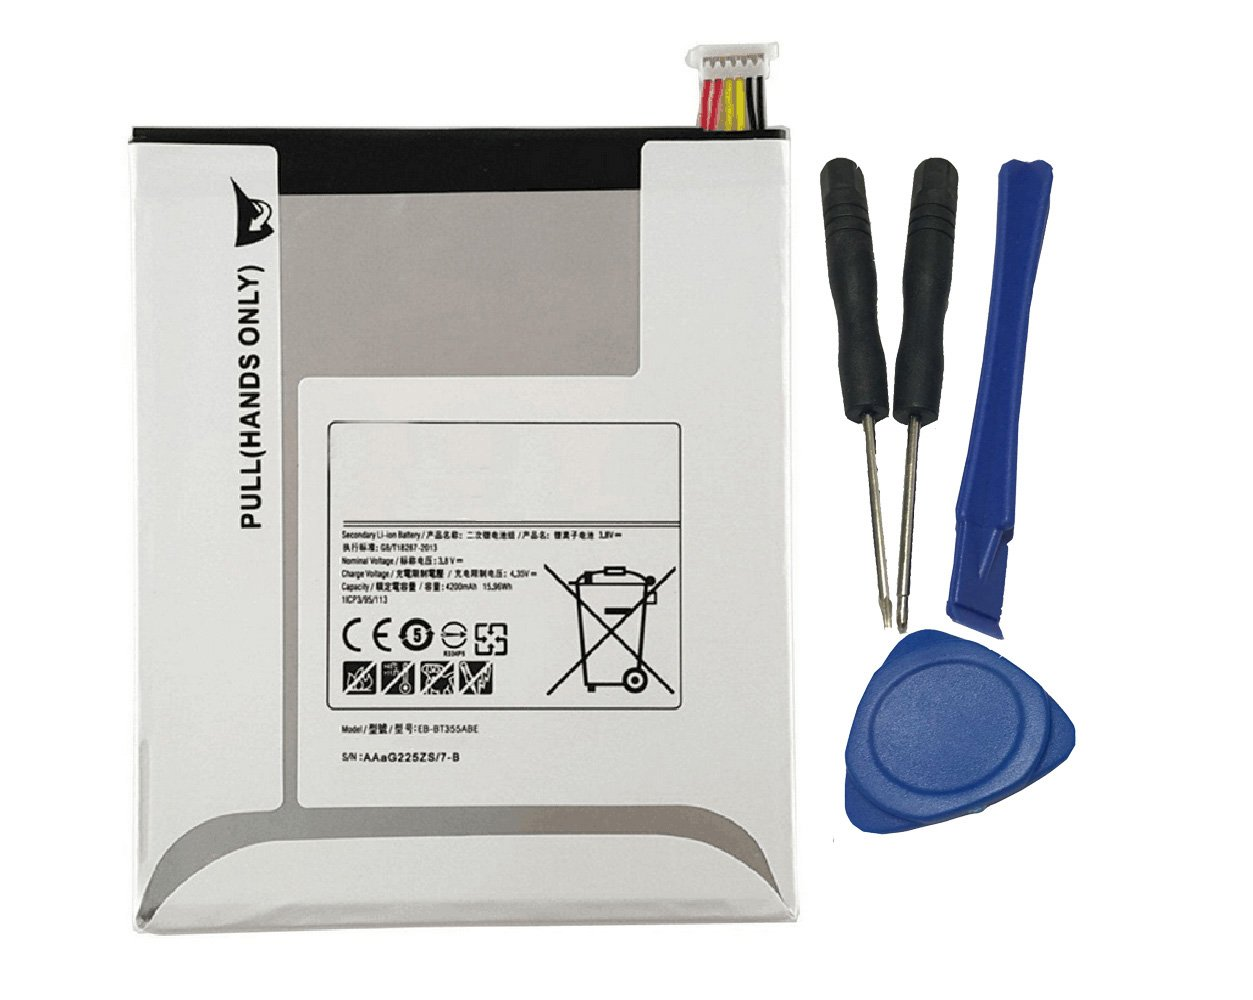 Tesurty New Replacement EB-BT355ABA, EB-BT355ABE Battery for Samsung Galaxy Tab A 8.0'' LTE WiFi, SM-T350 SM-T355 SM-T357 with Tools